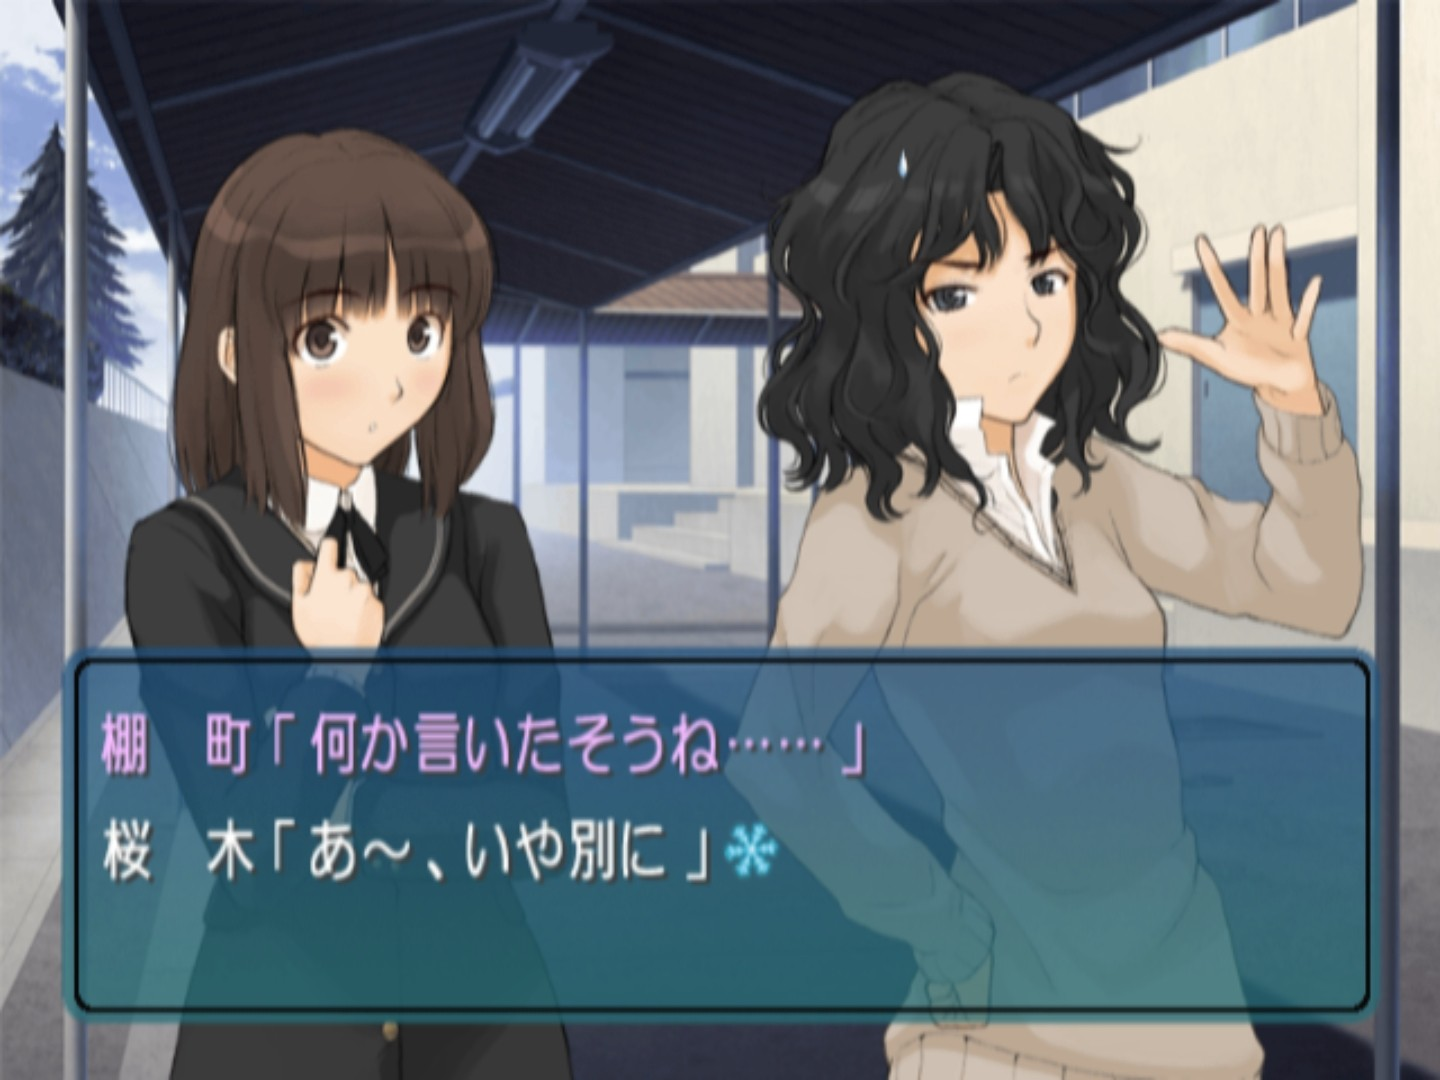 Amagami dating sim pc game